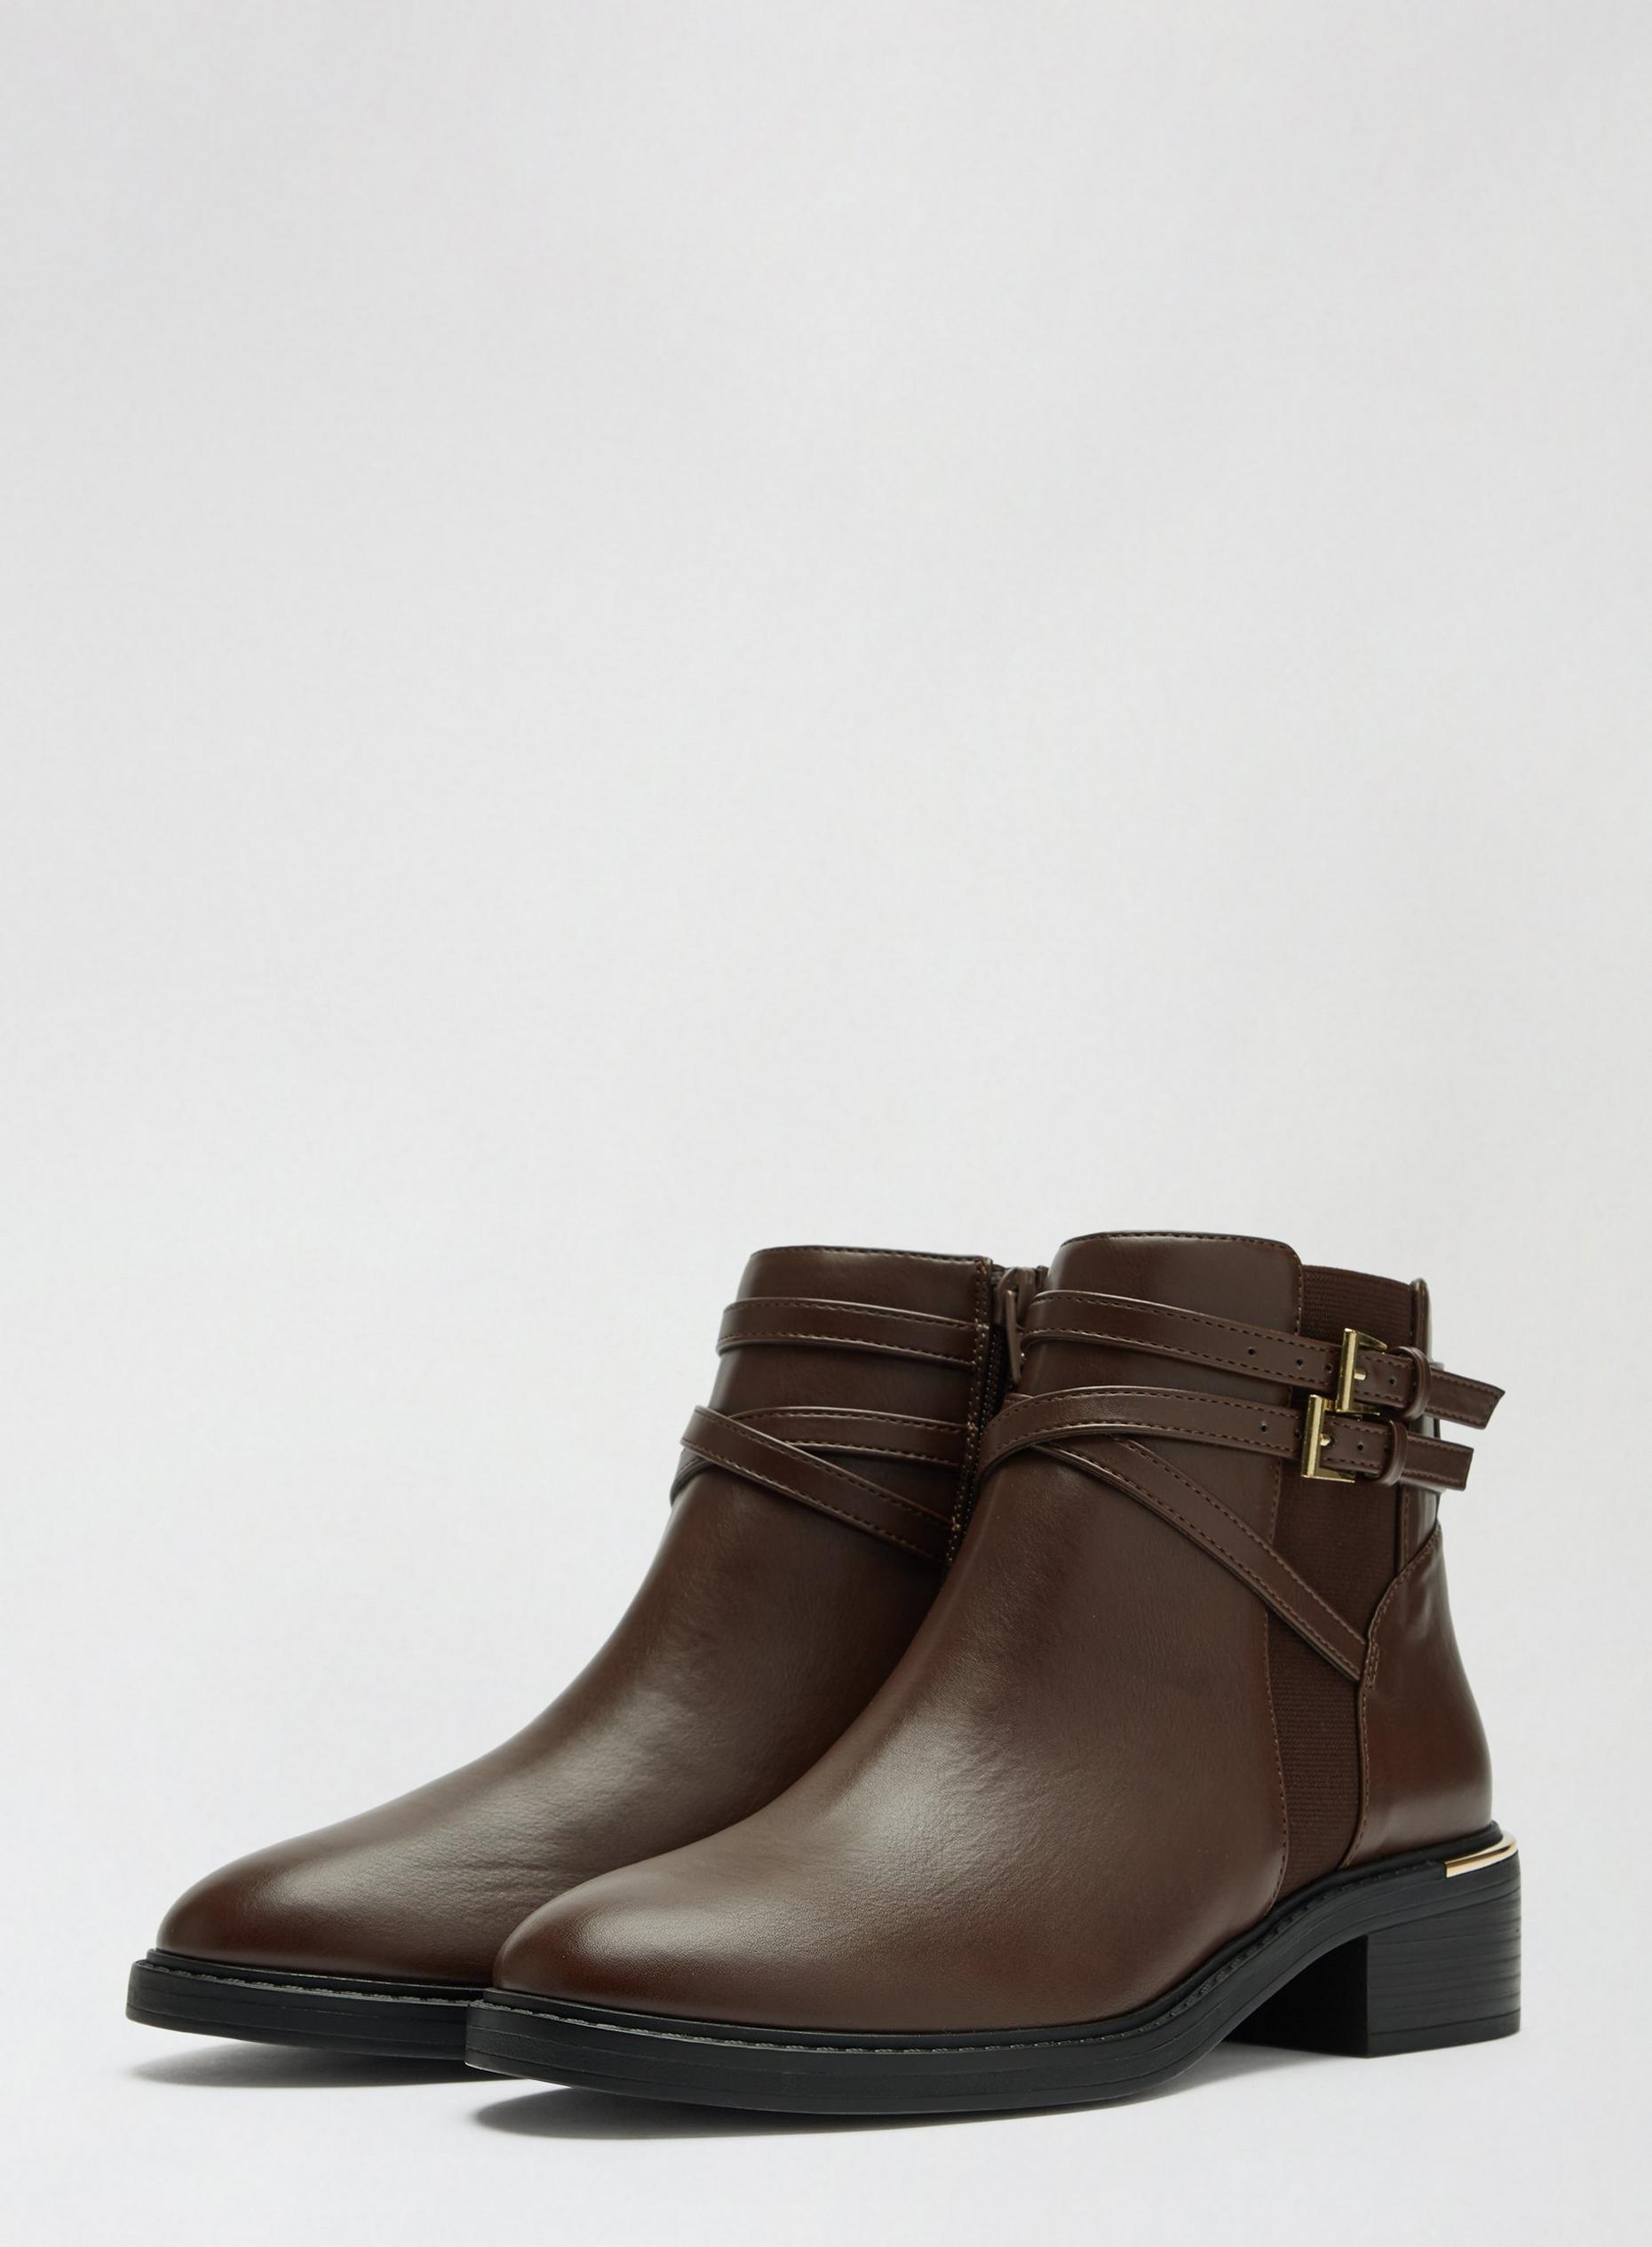 Chocolate Minkie Chelsea Boots